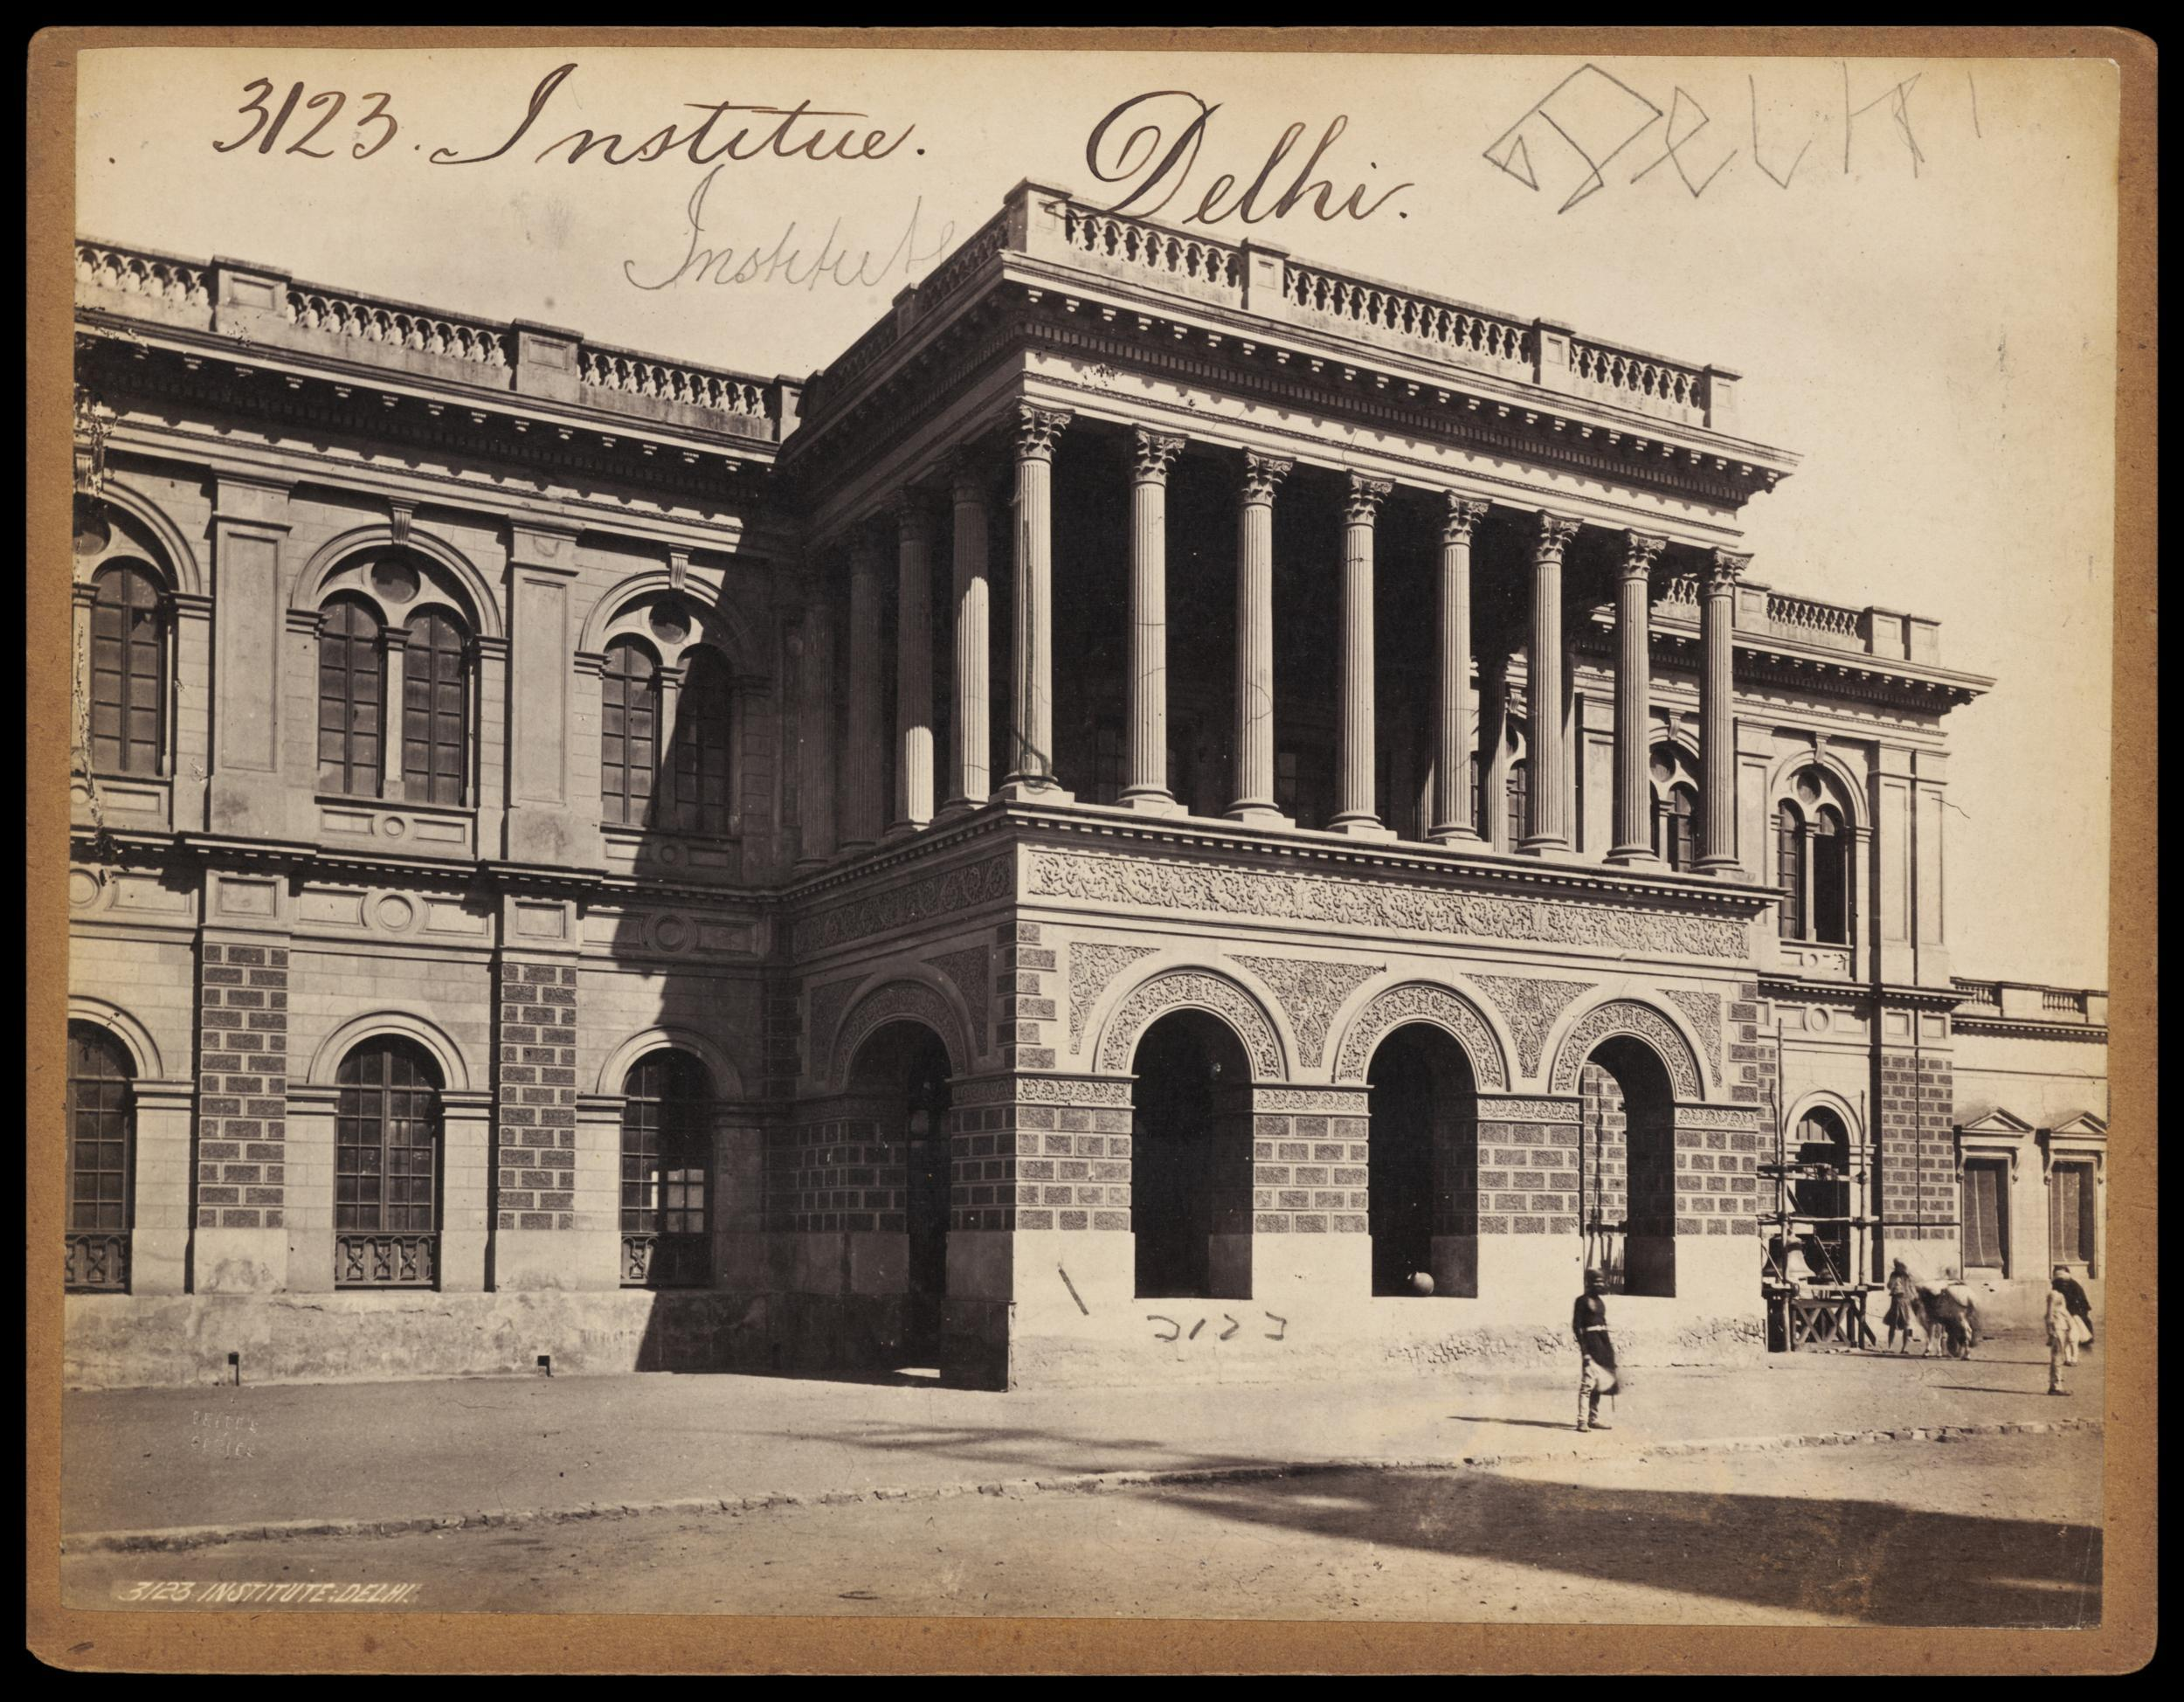 Institute, Delhi - Mid 19th Century